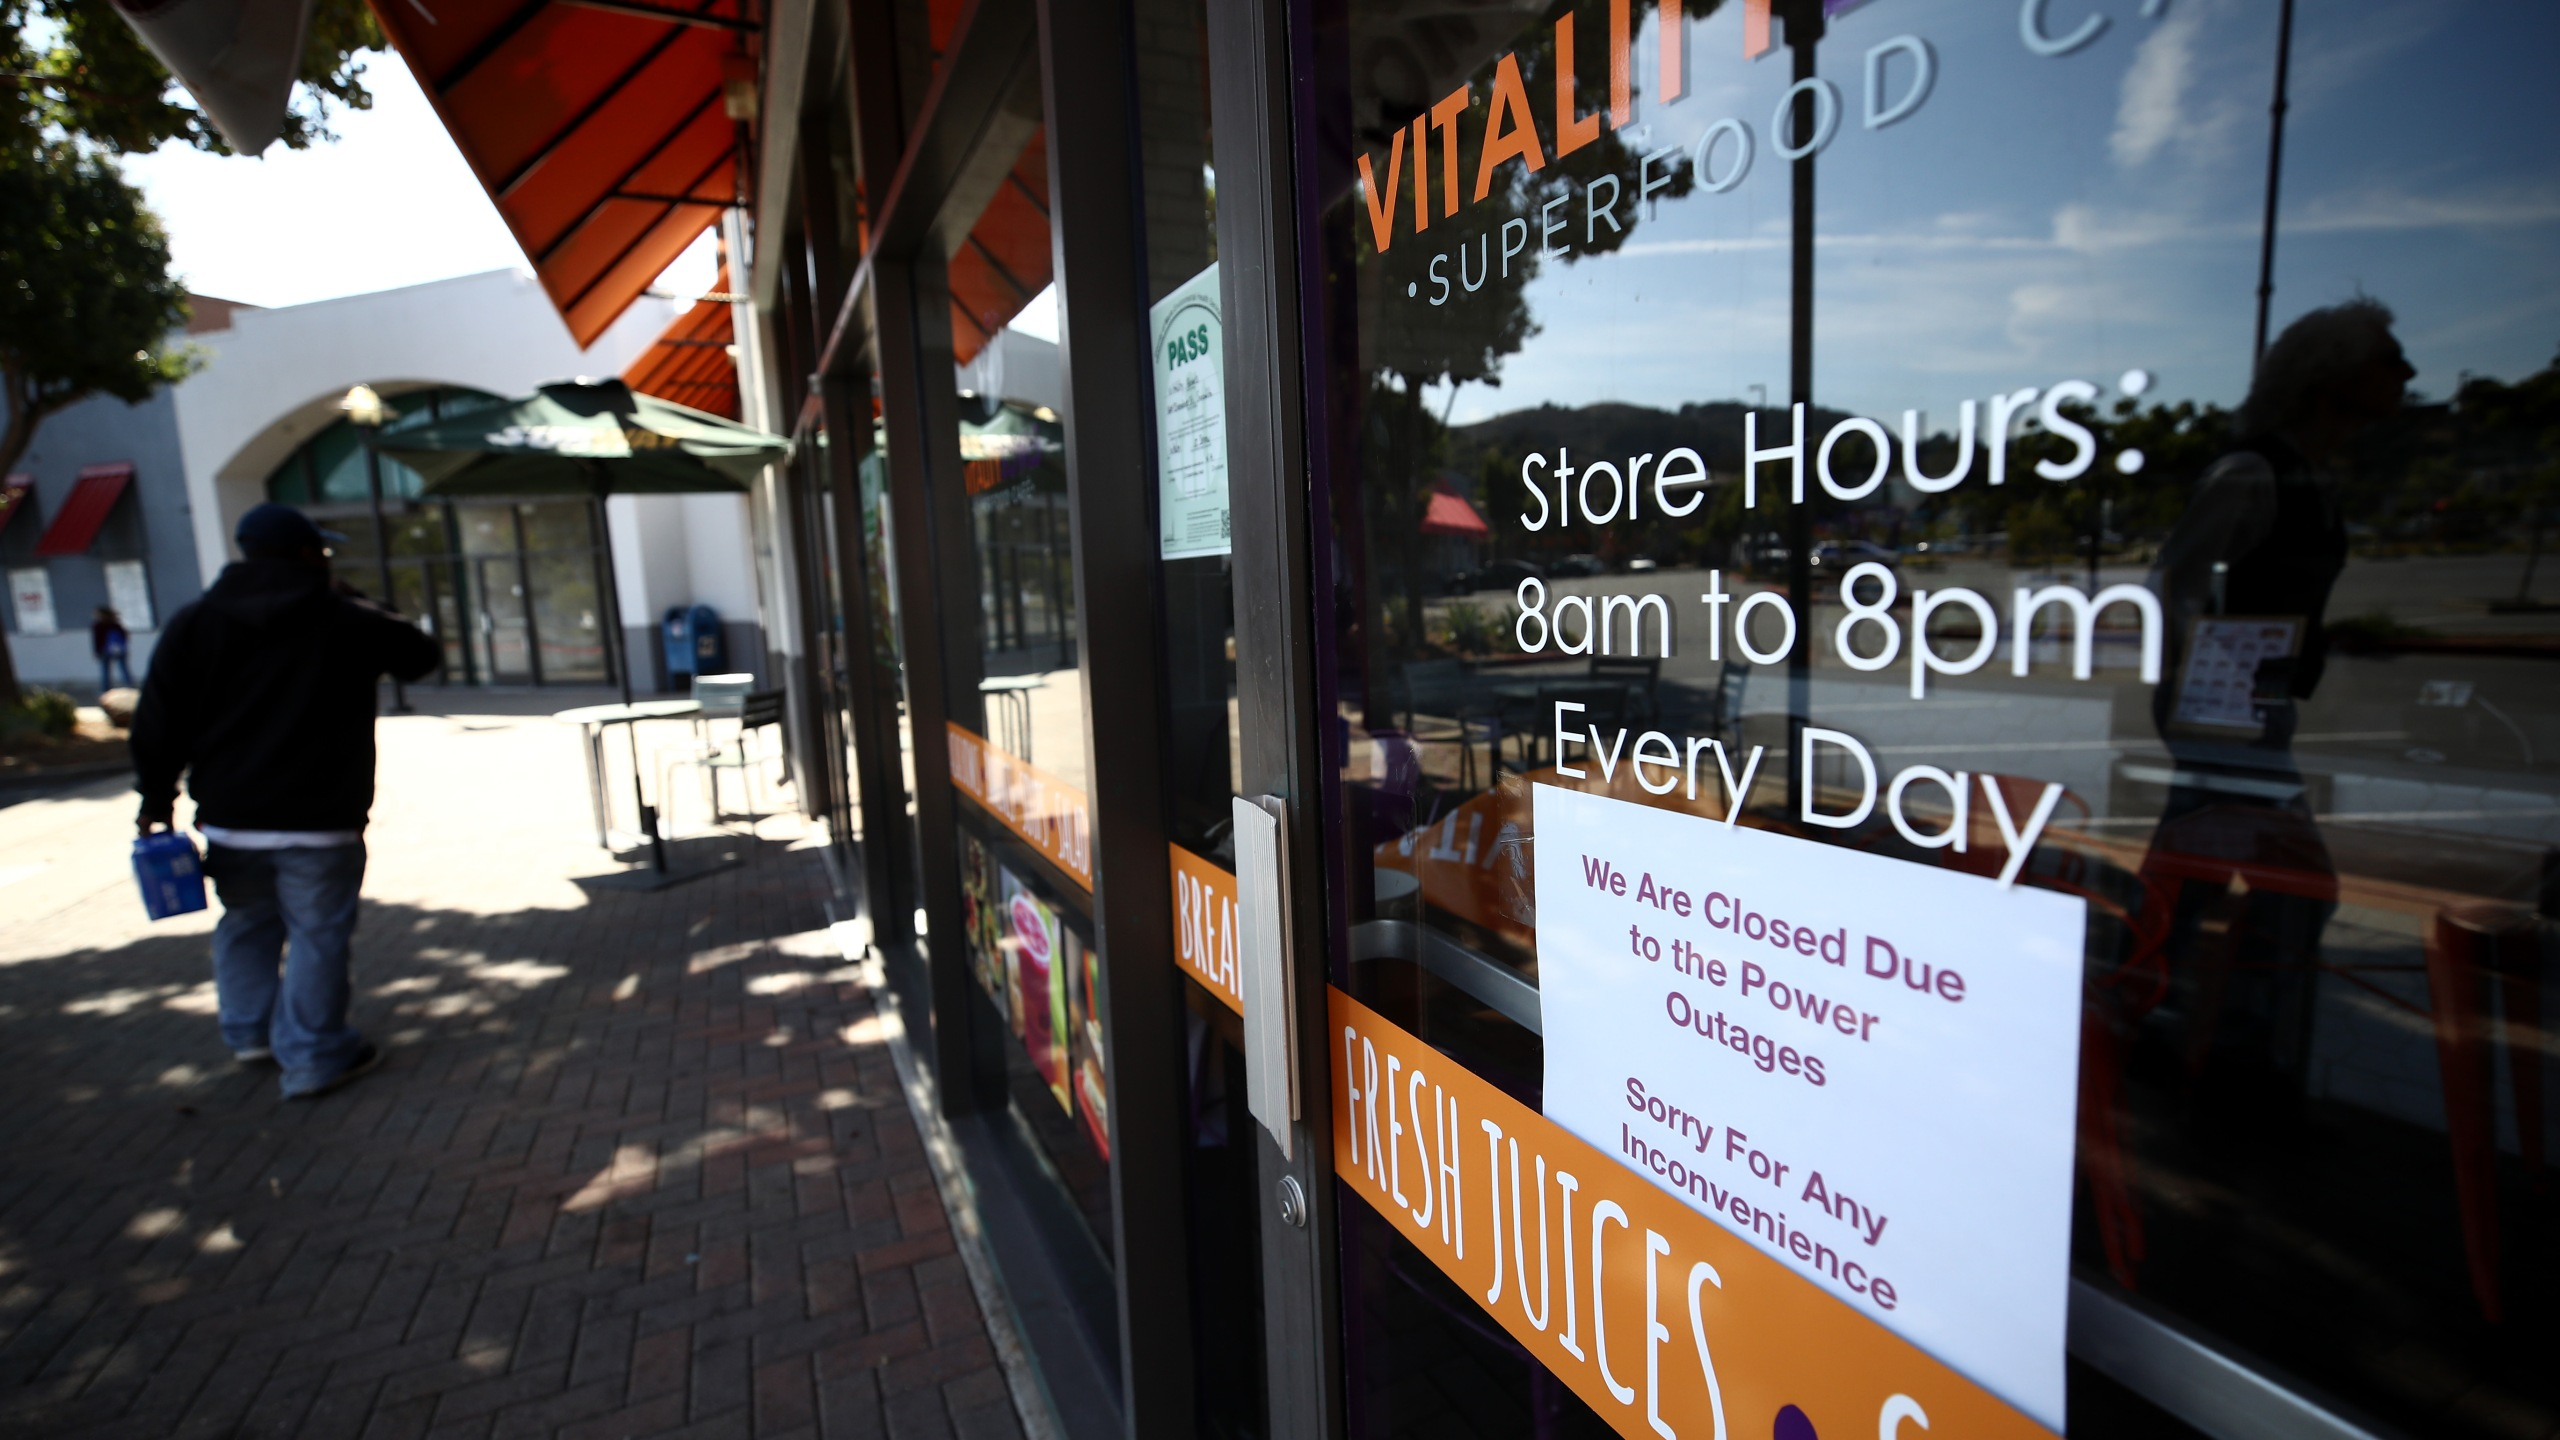 A sign posted on the door of Vitality Bowls cafe announces closure due to power outages on Oct. 10, 2019 in Marin City, California. (Credit: Ezra Shaw/Getty Images)